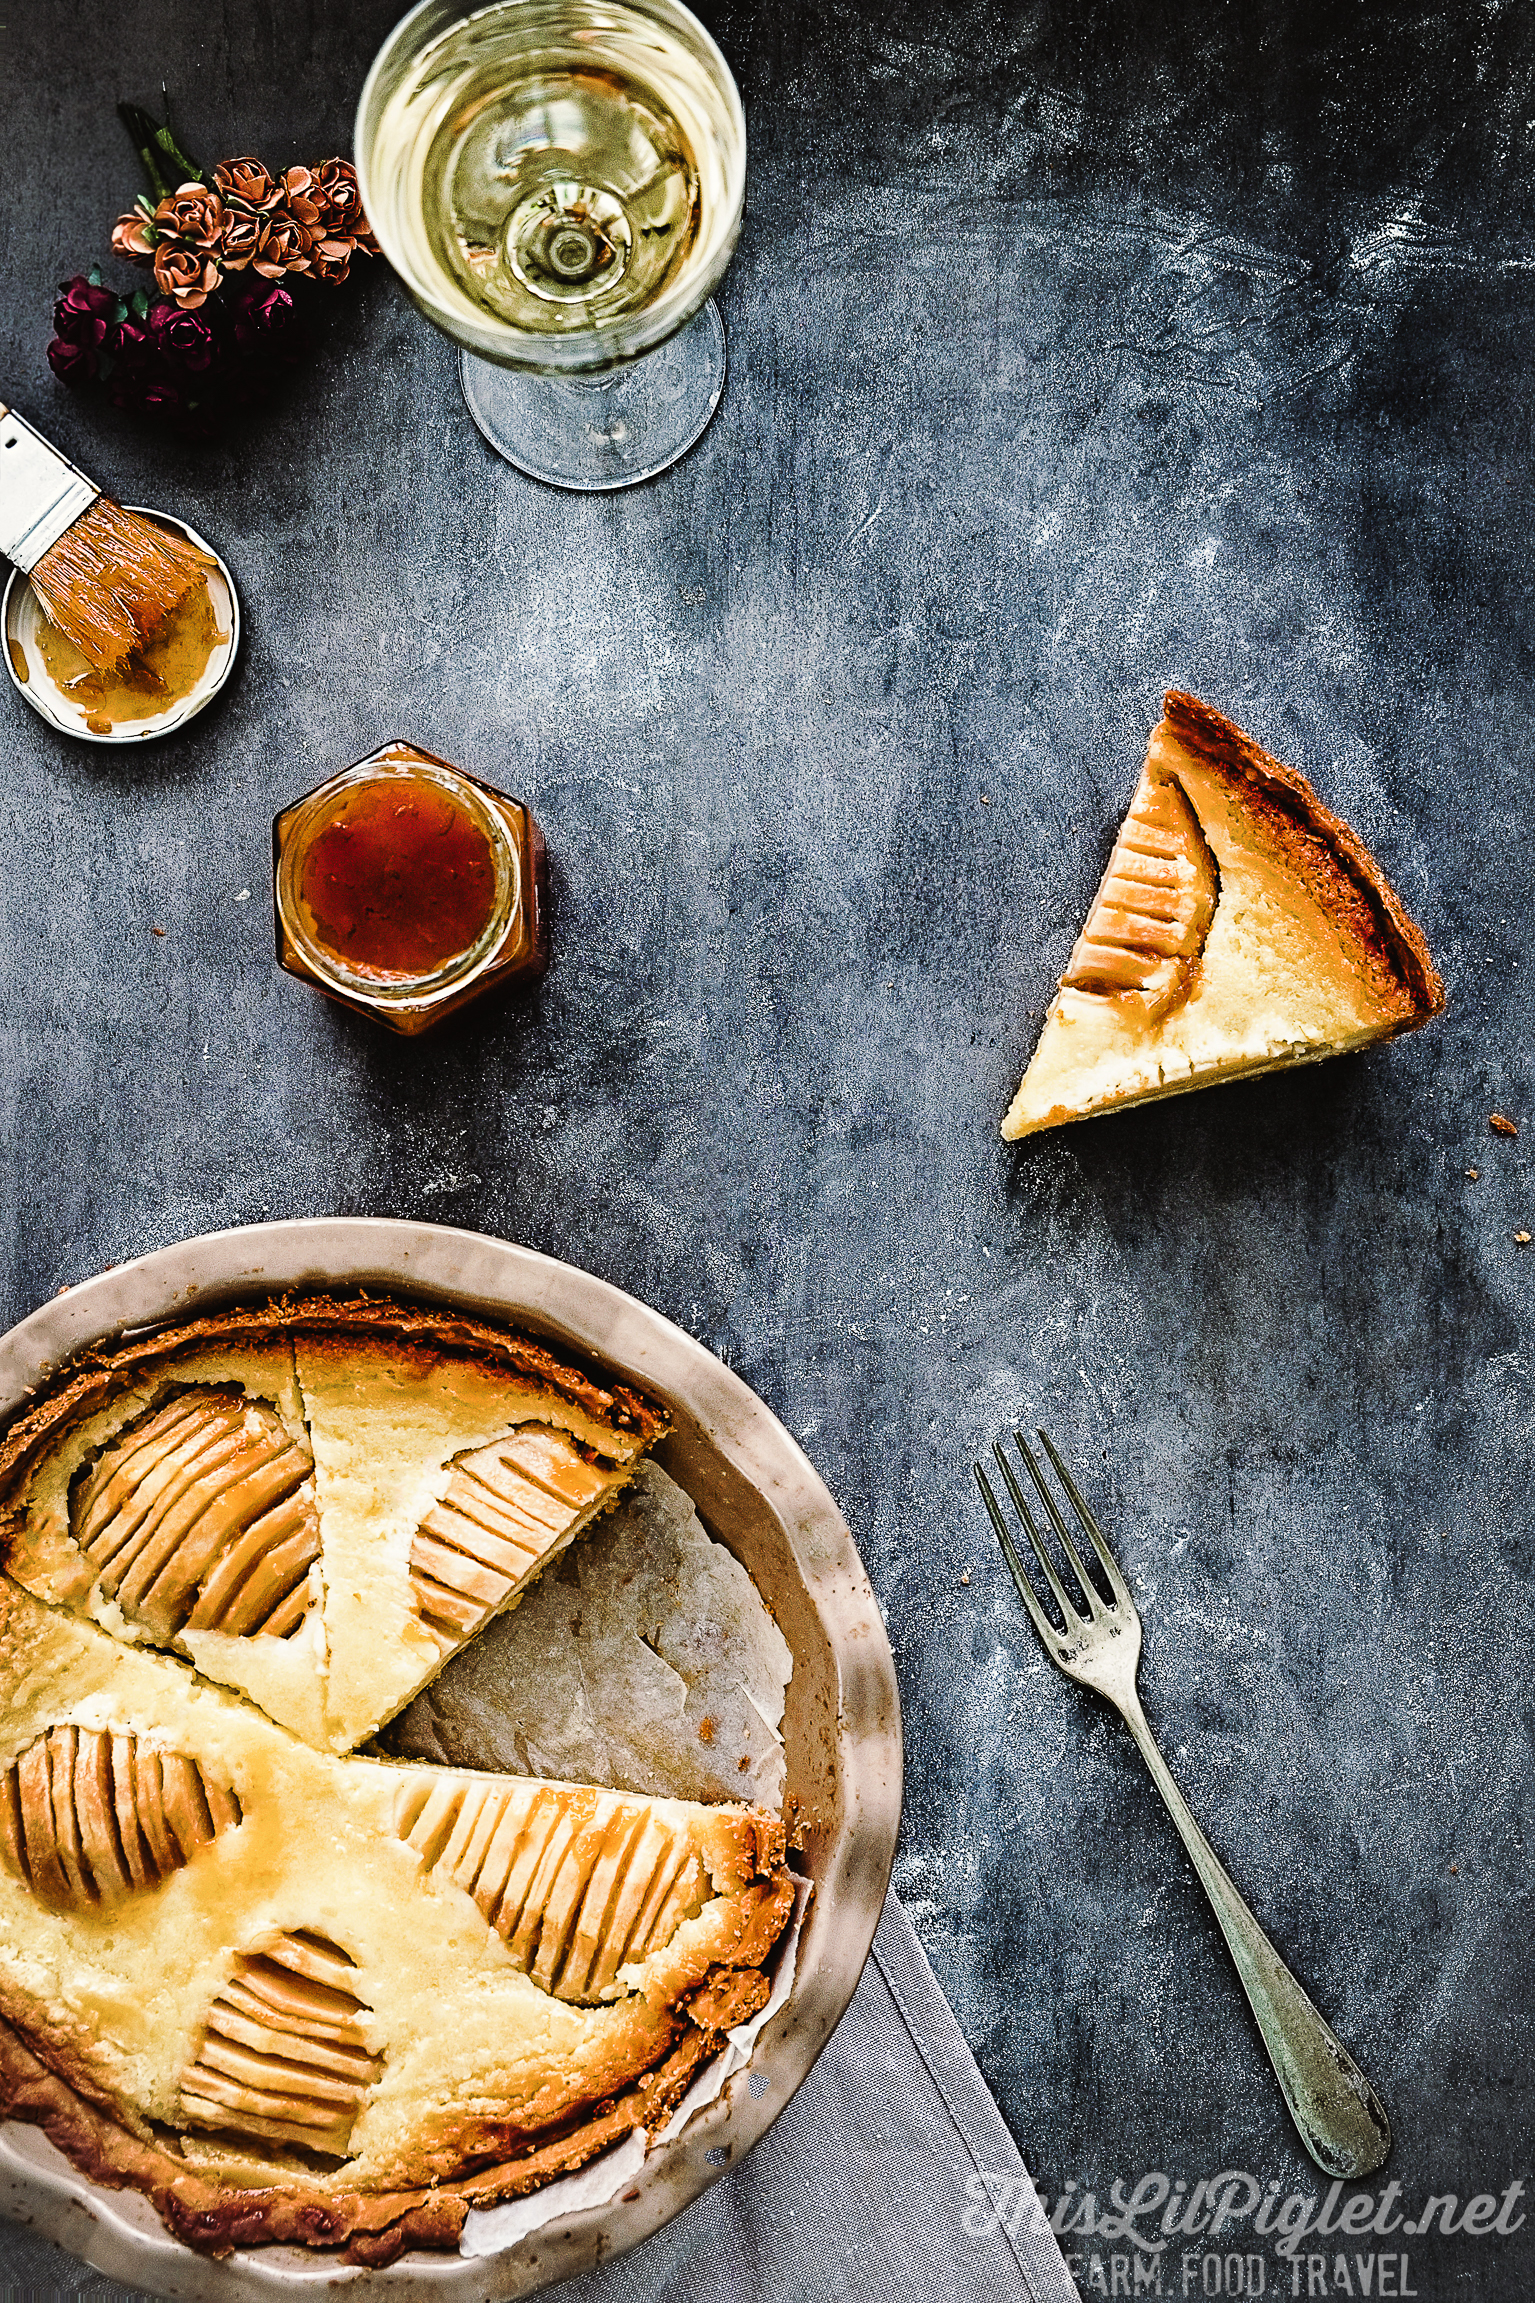 Wine Glazed Pear Tart with Frangipane Filling Sliced // thislilpiglet.net